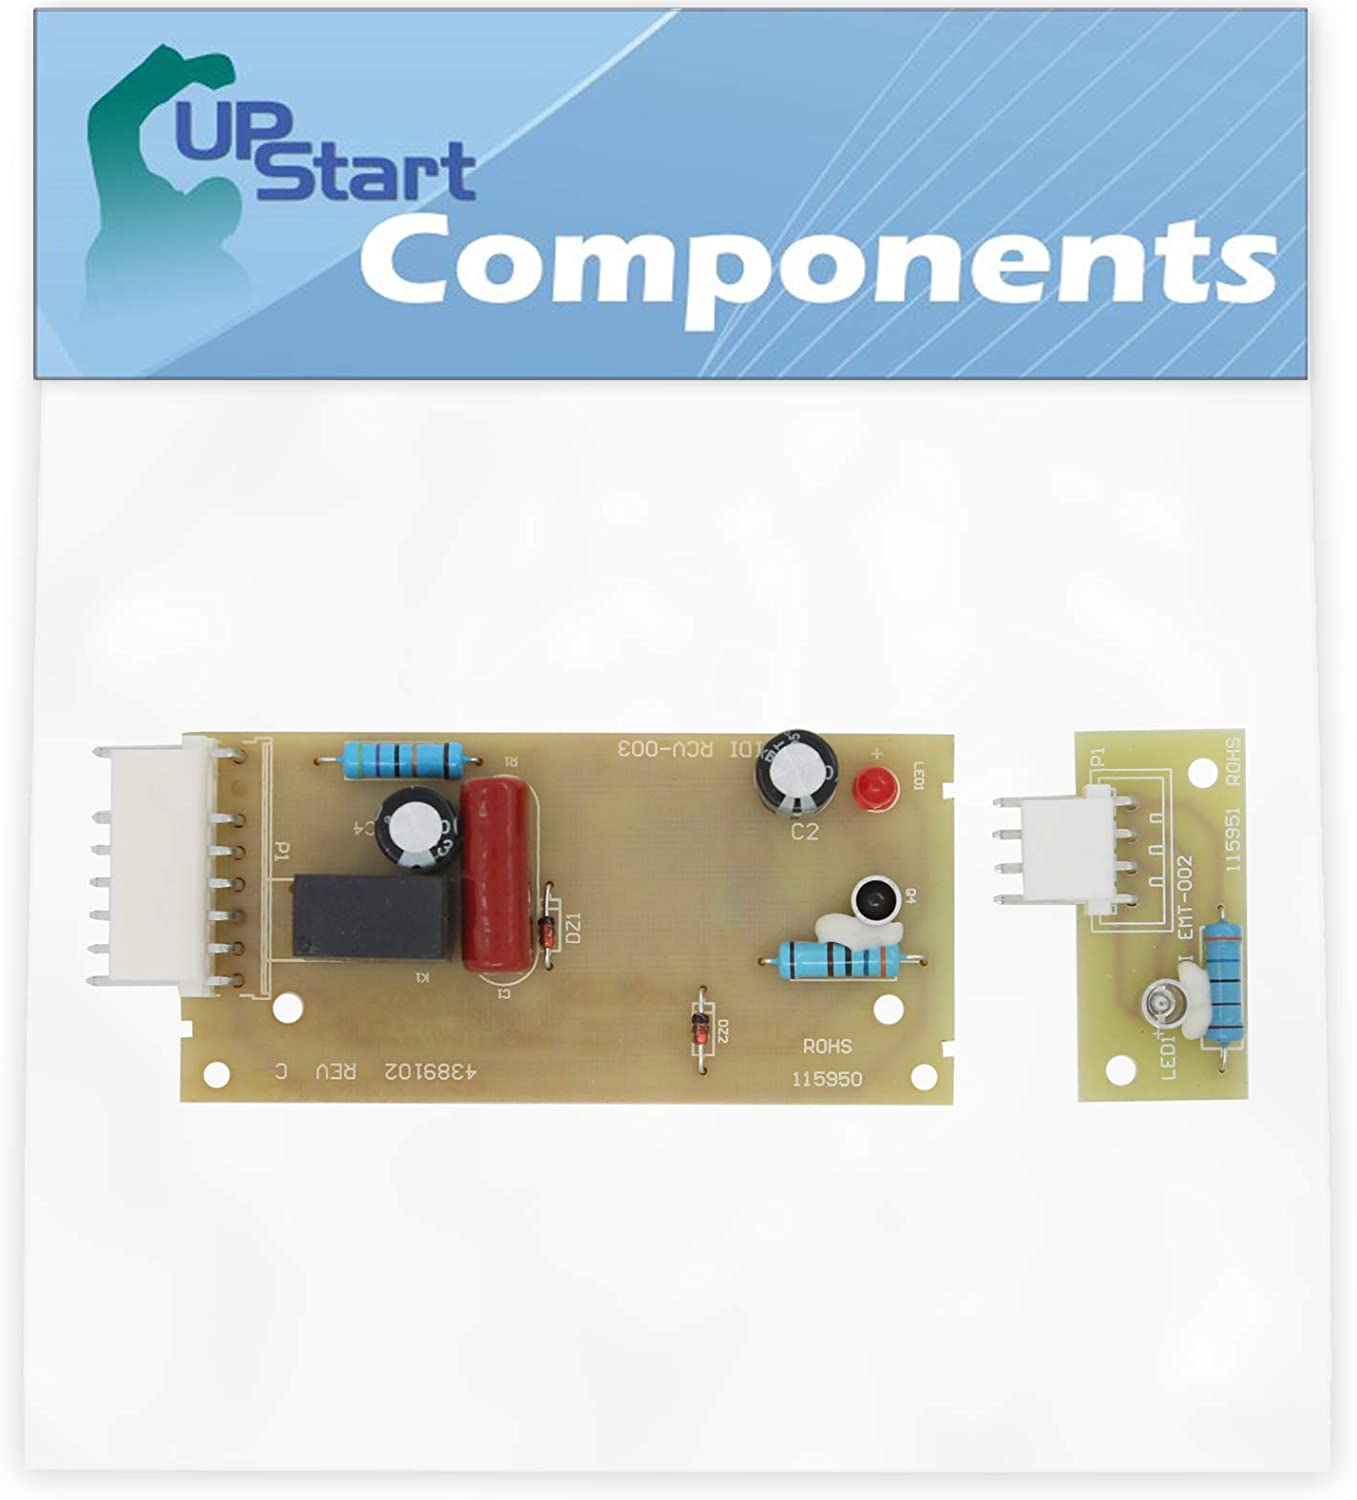 W10757851 Refrigerator Ice Level Control Board Replacement for Part Number PS10064583 Refrigerator - Compatible with 4389102 Icemaker Emitter Sensor Control Board - UpStart Components Brand